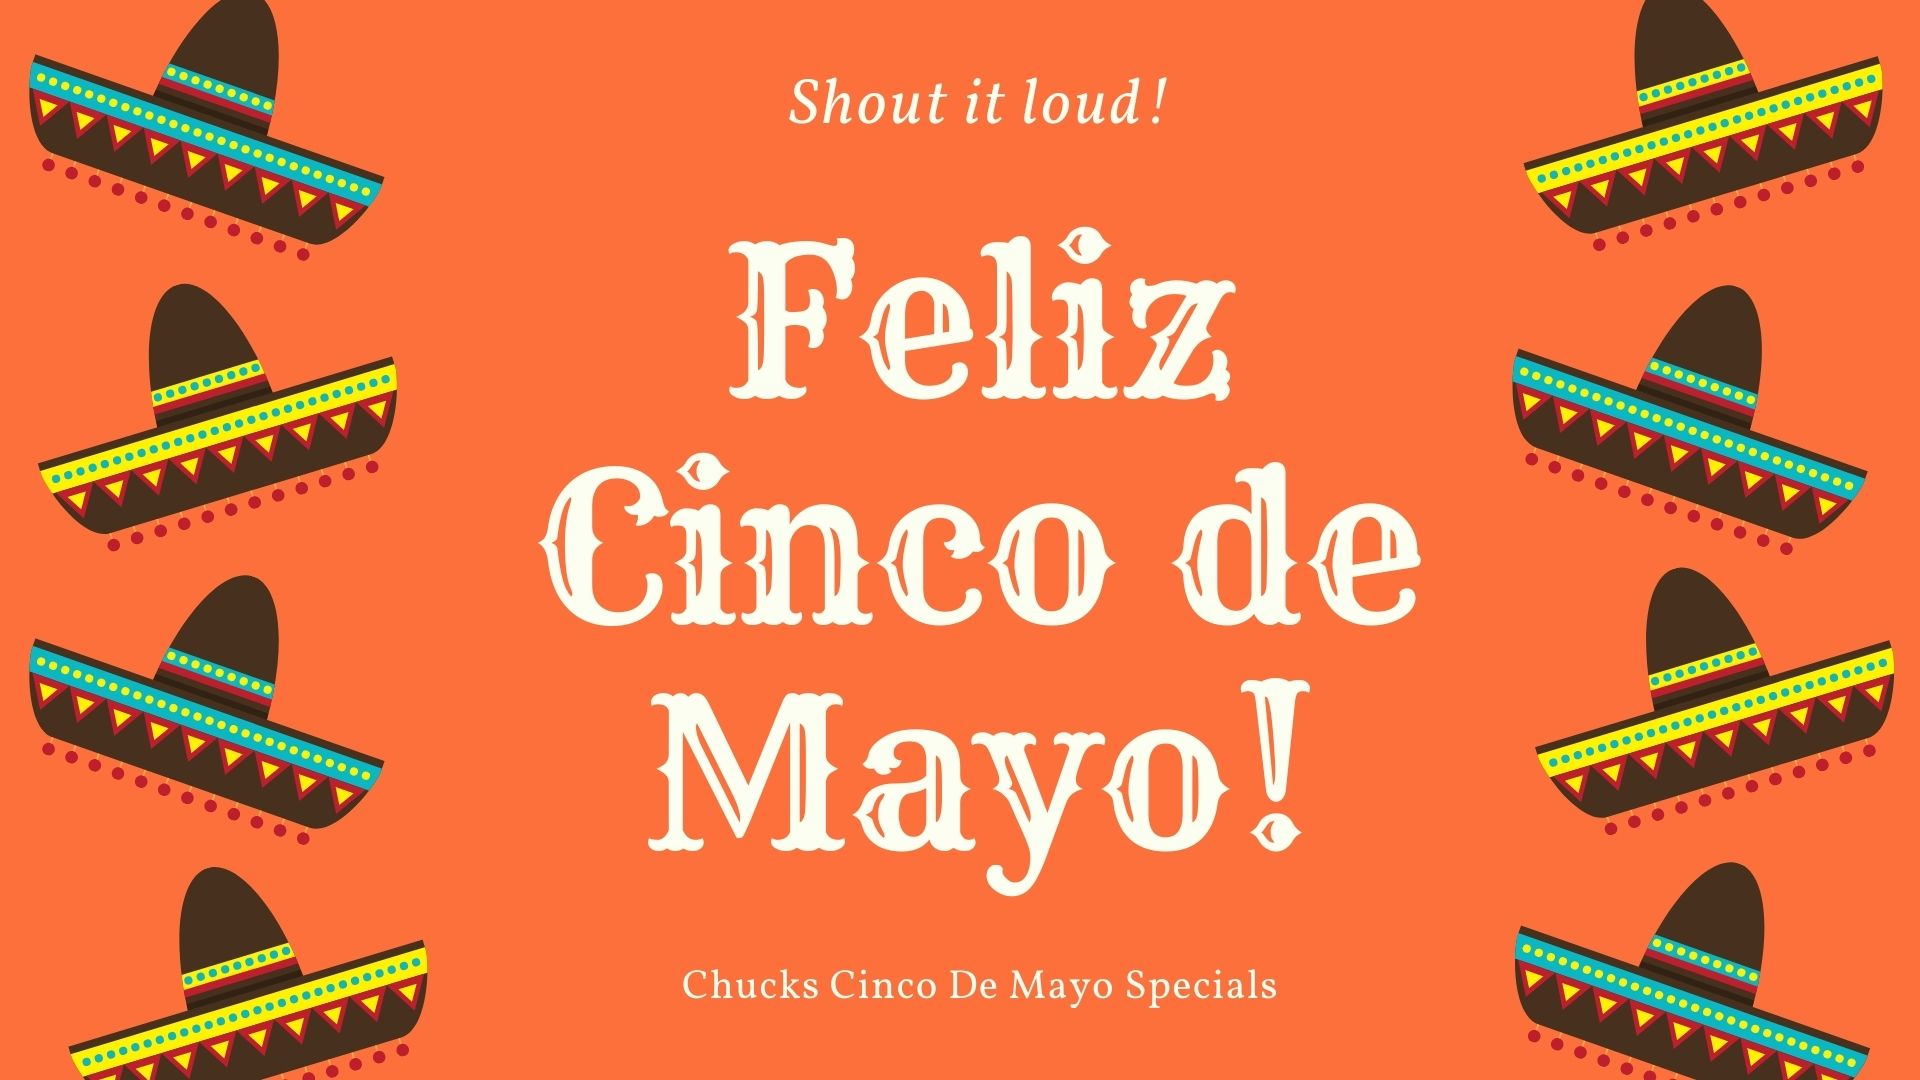 Cinco De Mayo @ Chucks Wednesday May 5th